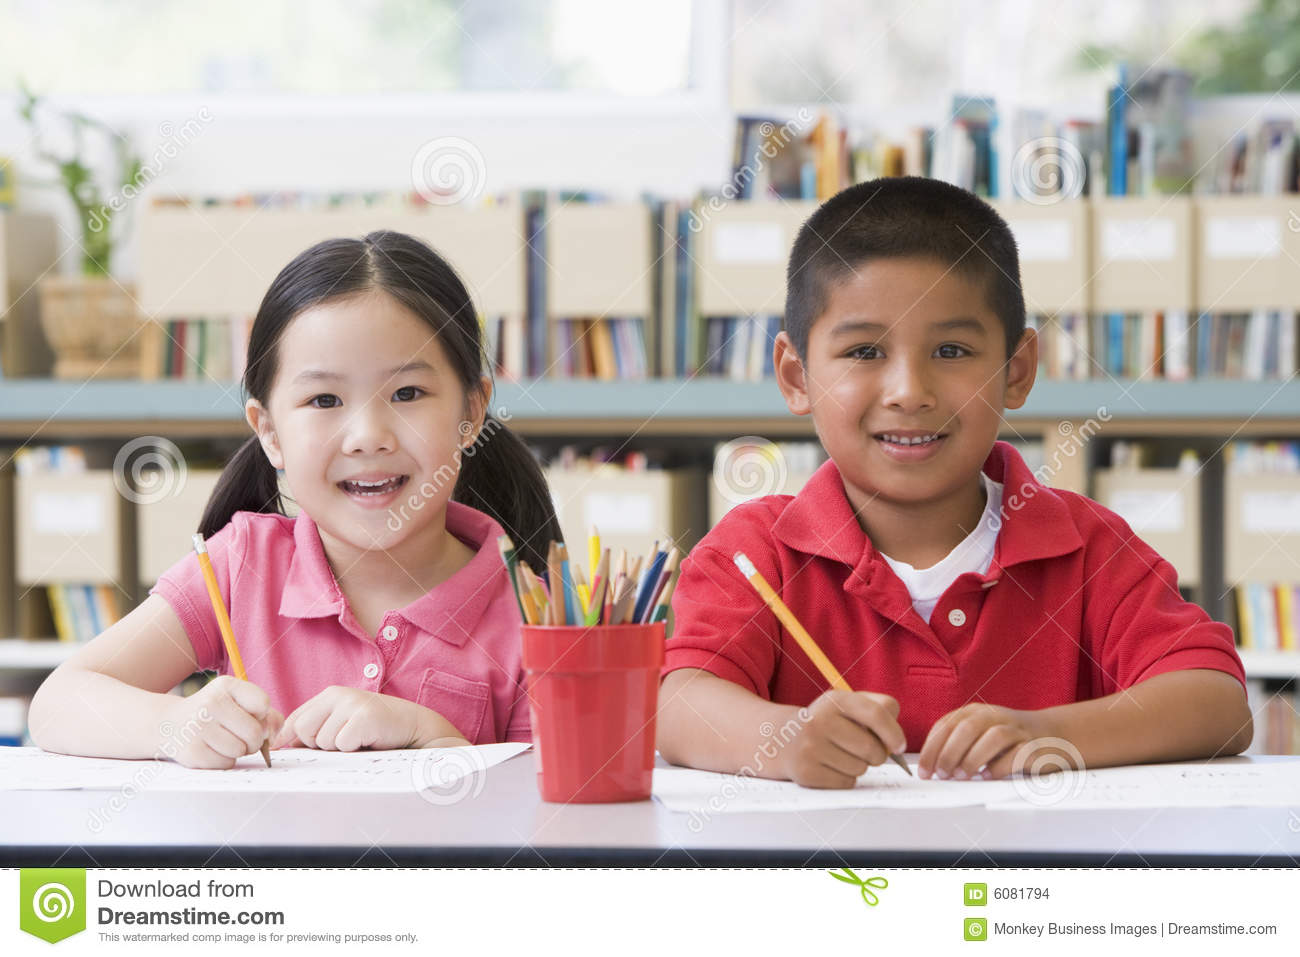 Essay on My Classroom for Childrens, Kids and School Students